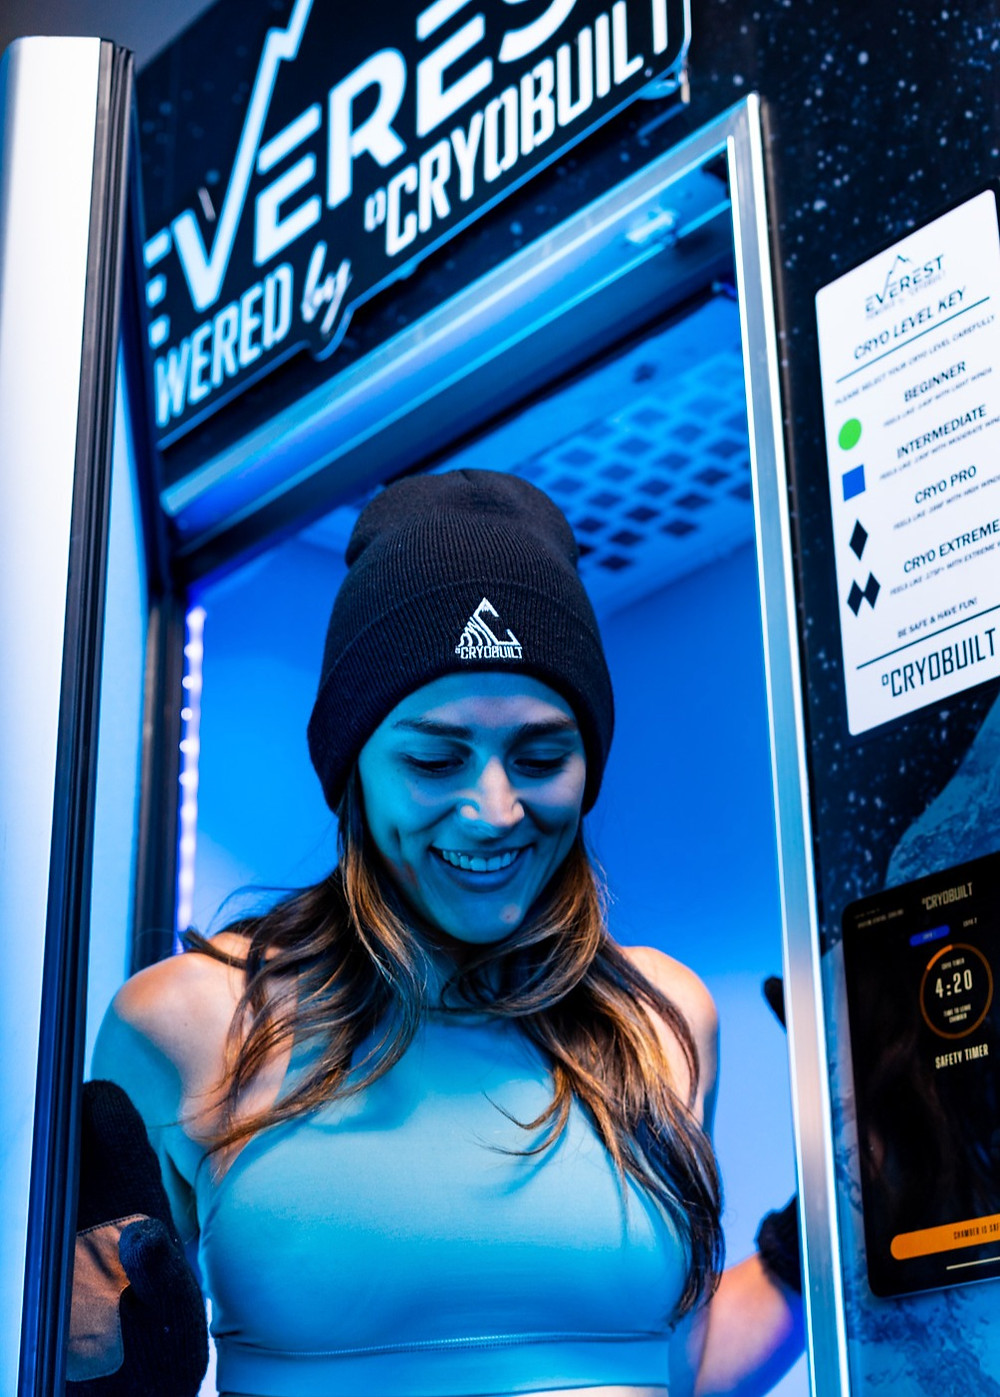 Smiling girl stepping out of Whole Body Cryotherapy chamber